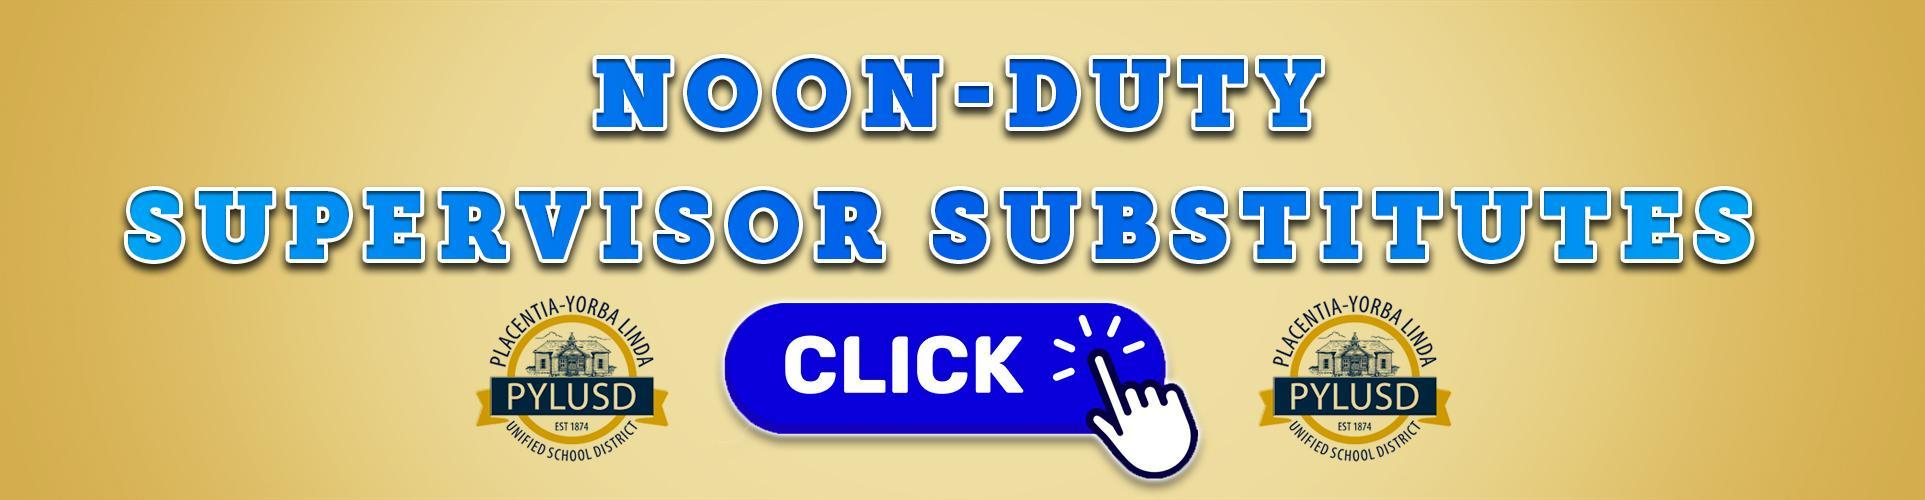 Noon Duty Supervisor Substitutes Wanted!